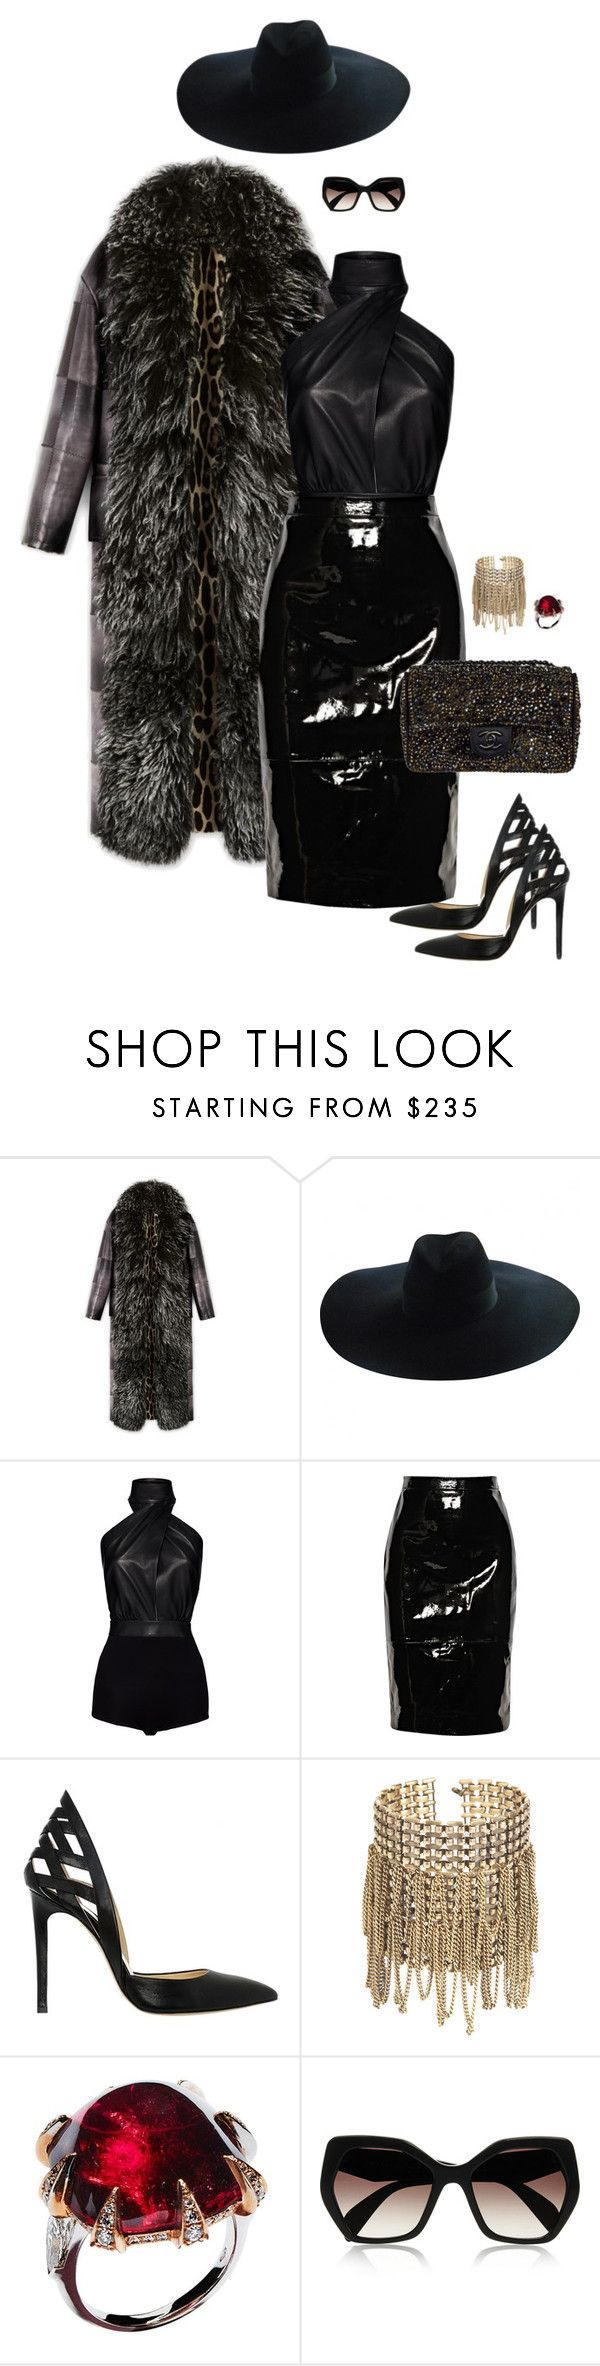 """Sans titre #87"" by jennissa-omaly ❤ liked on Polyvore featuring Yves Saint Laurent, Magda Butrym, Givenchy, Alejandro Ingelmo, Ellen Arthur, Chanel and Prada"